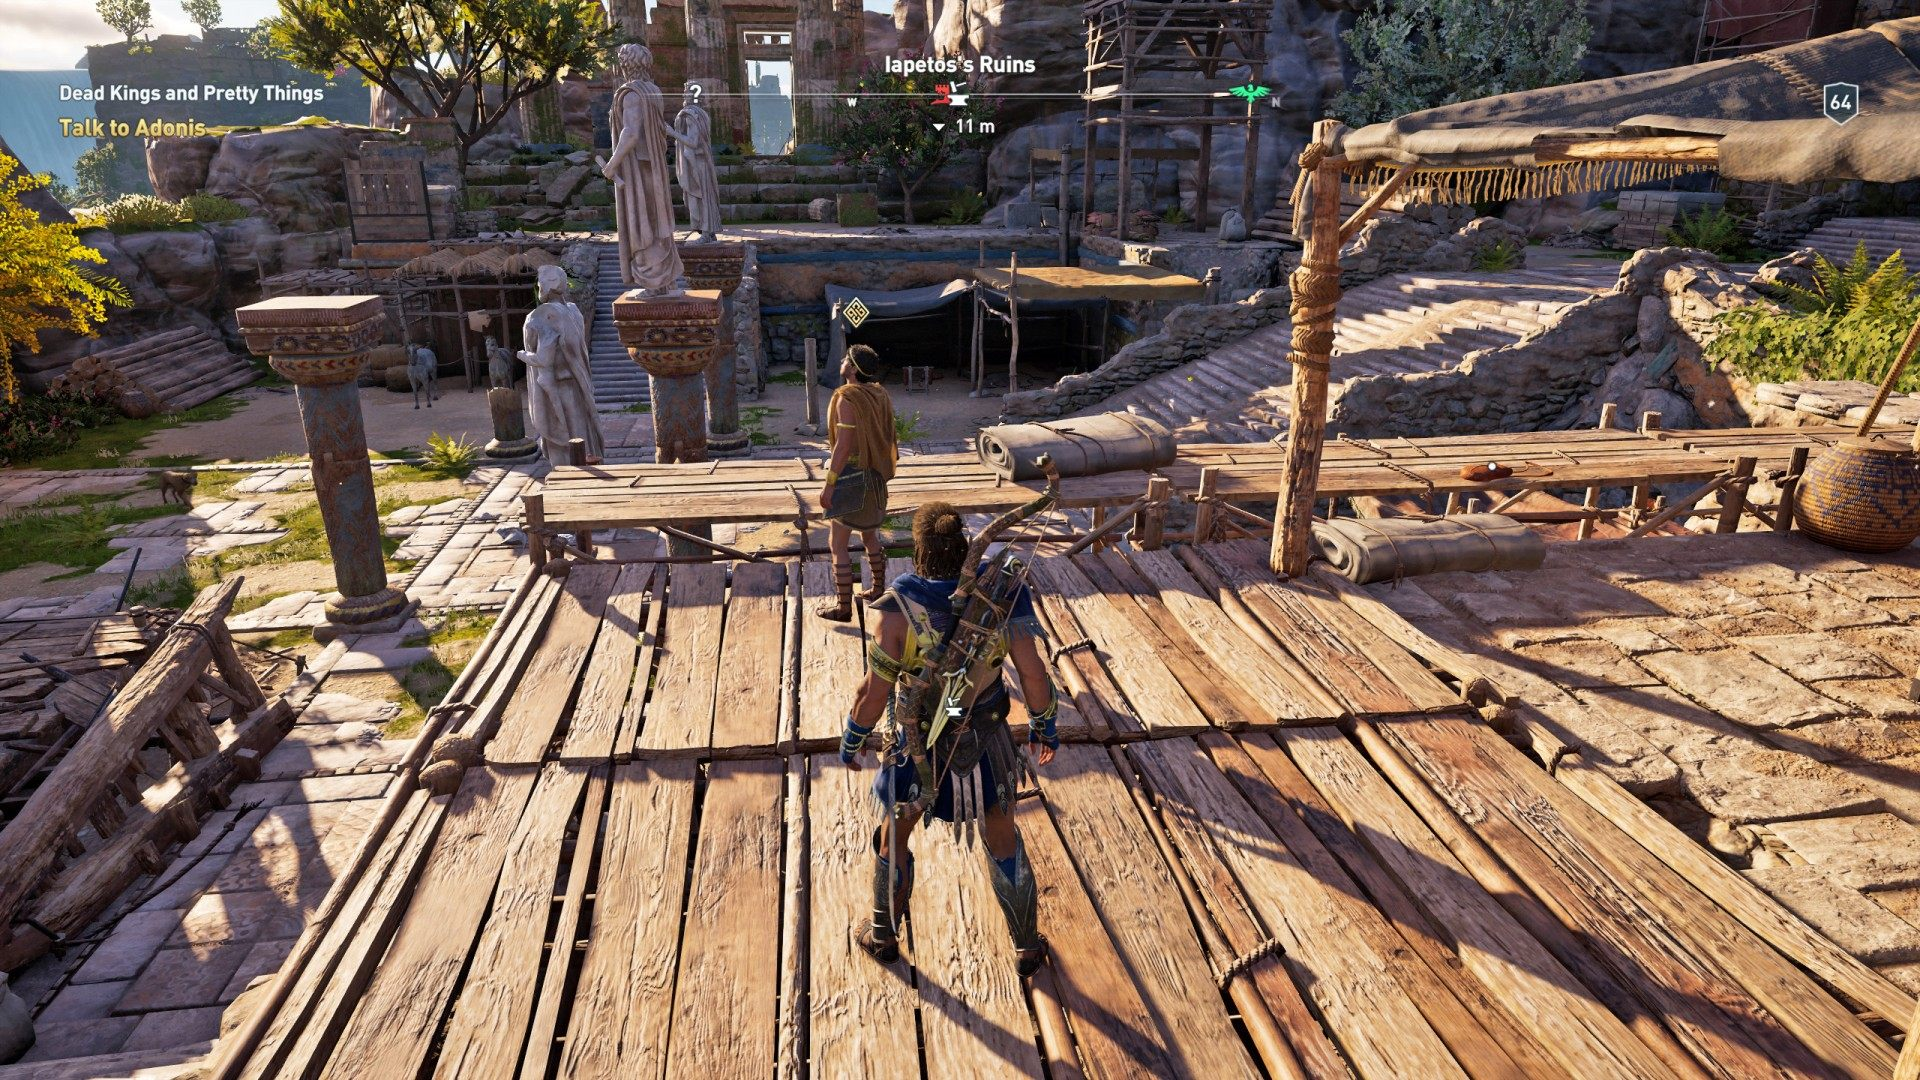 Dead Kings and Pretty Things, Assassin's Creed Odyssey Quest